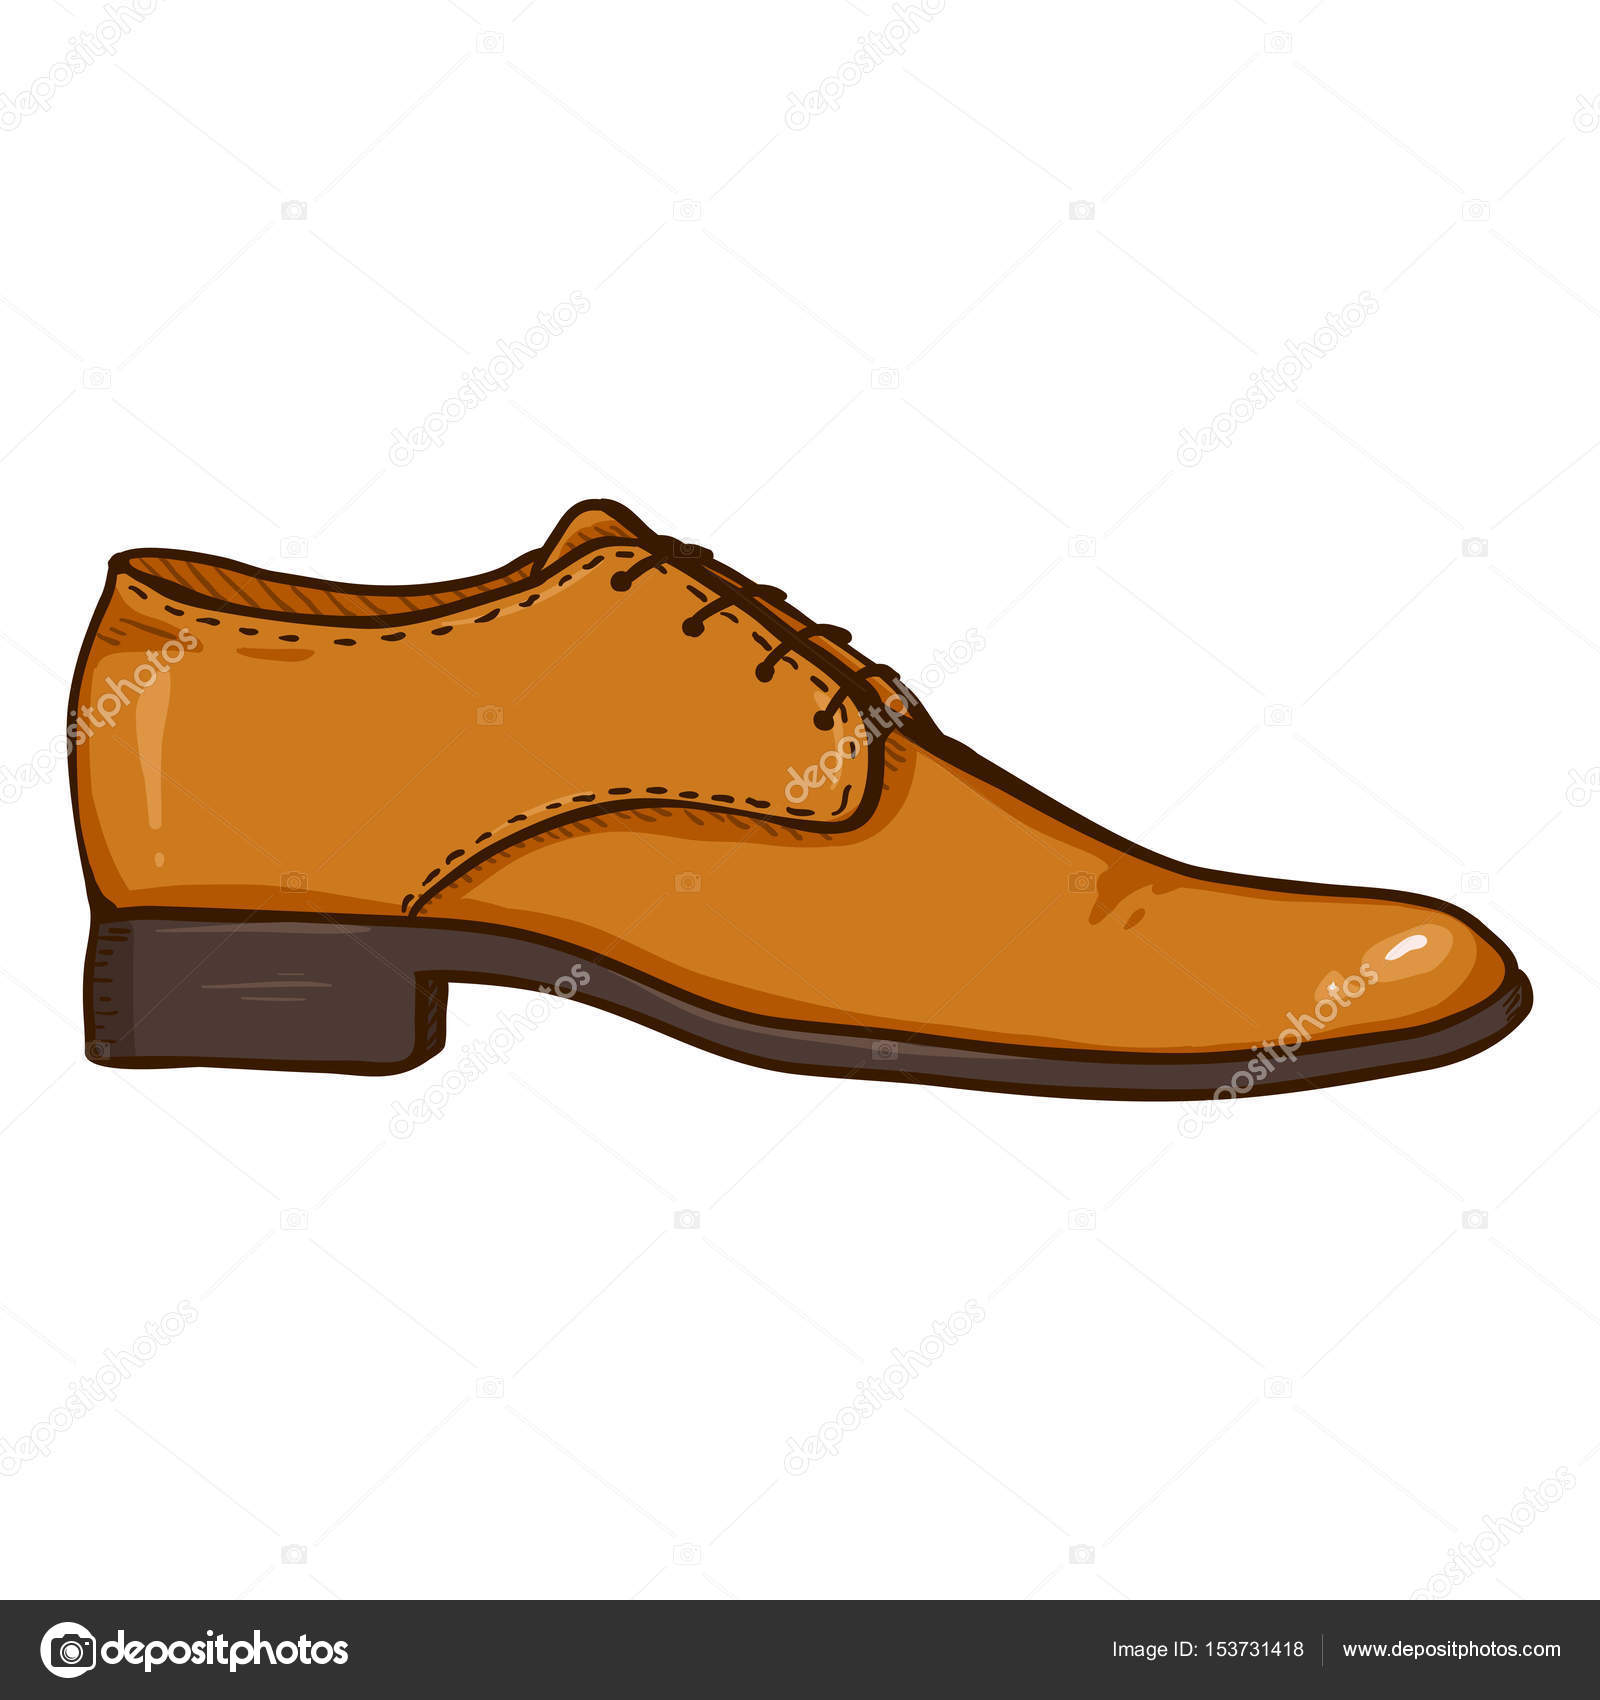 zapato cartoon images reverse search clip art of shoes and boots clip art of shoes outline